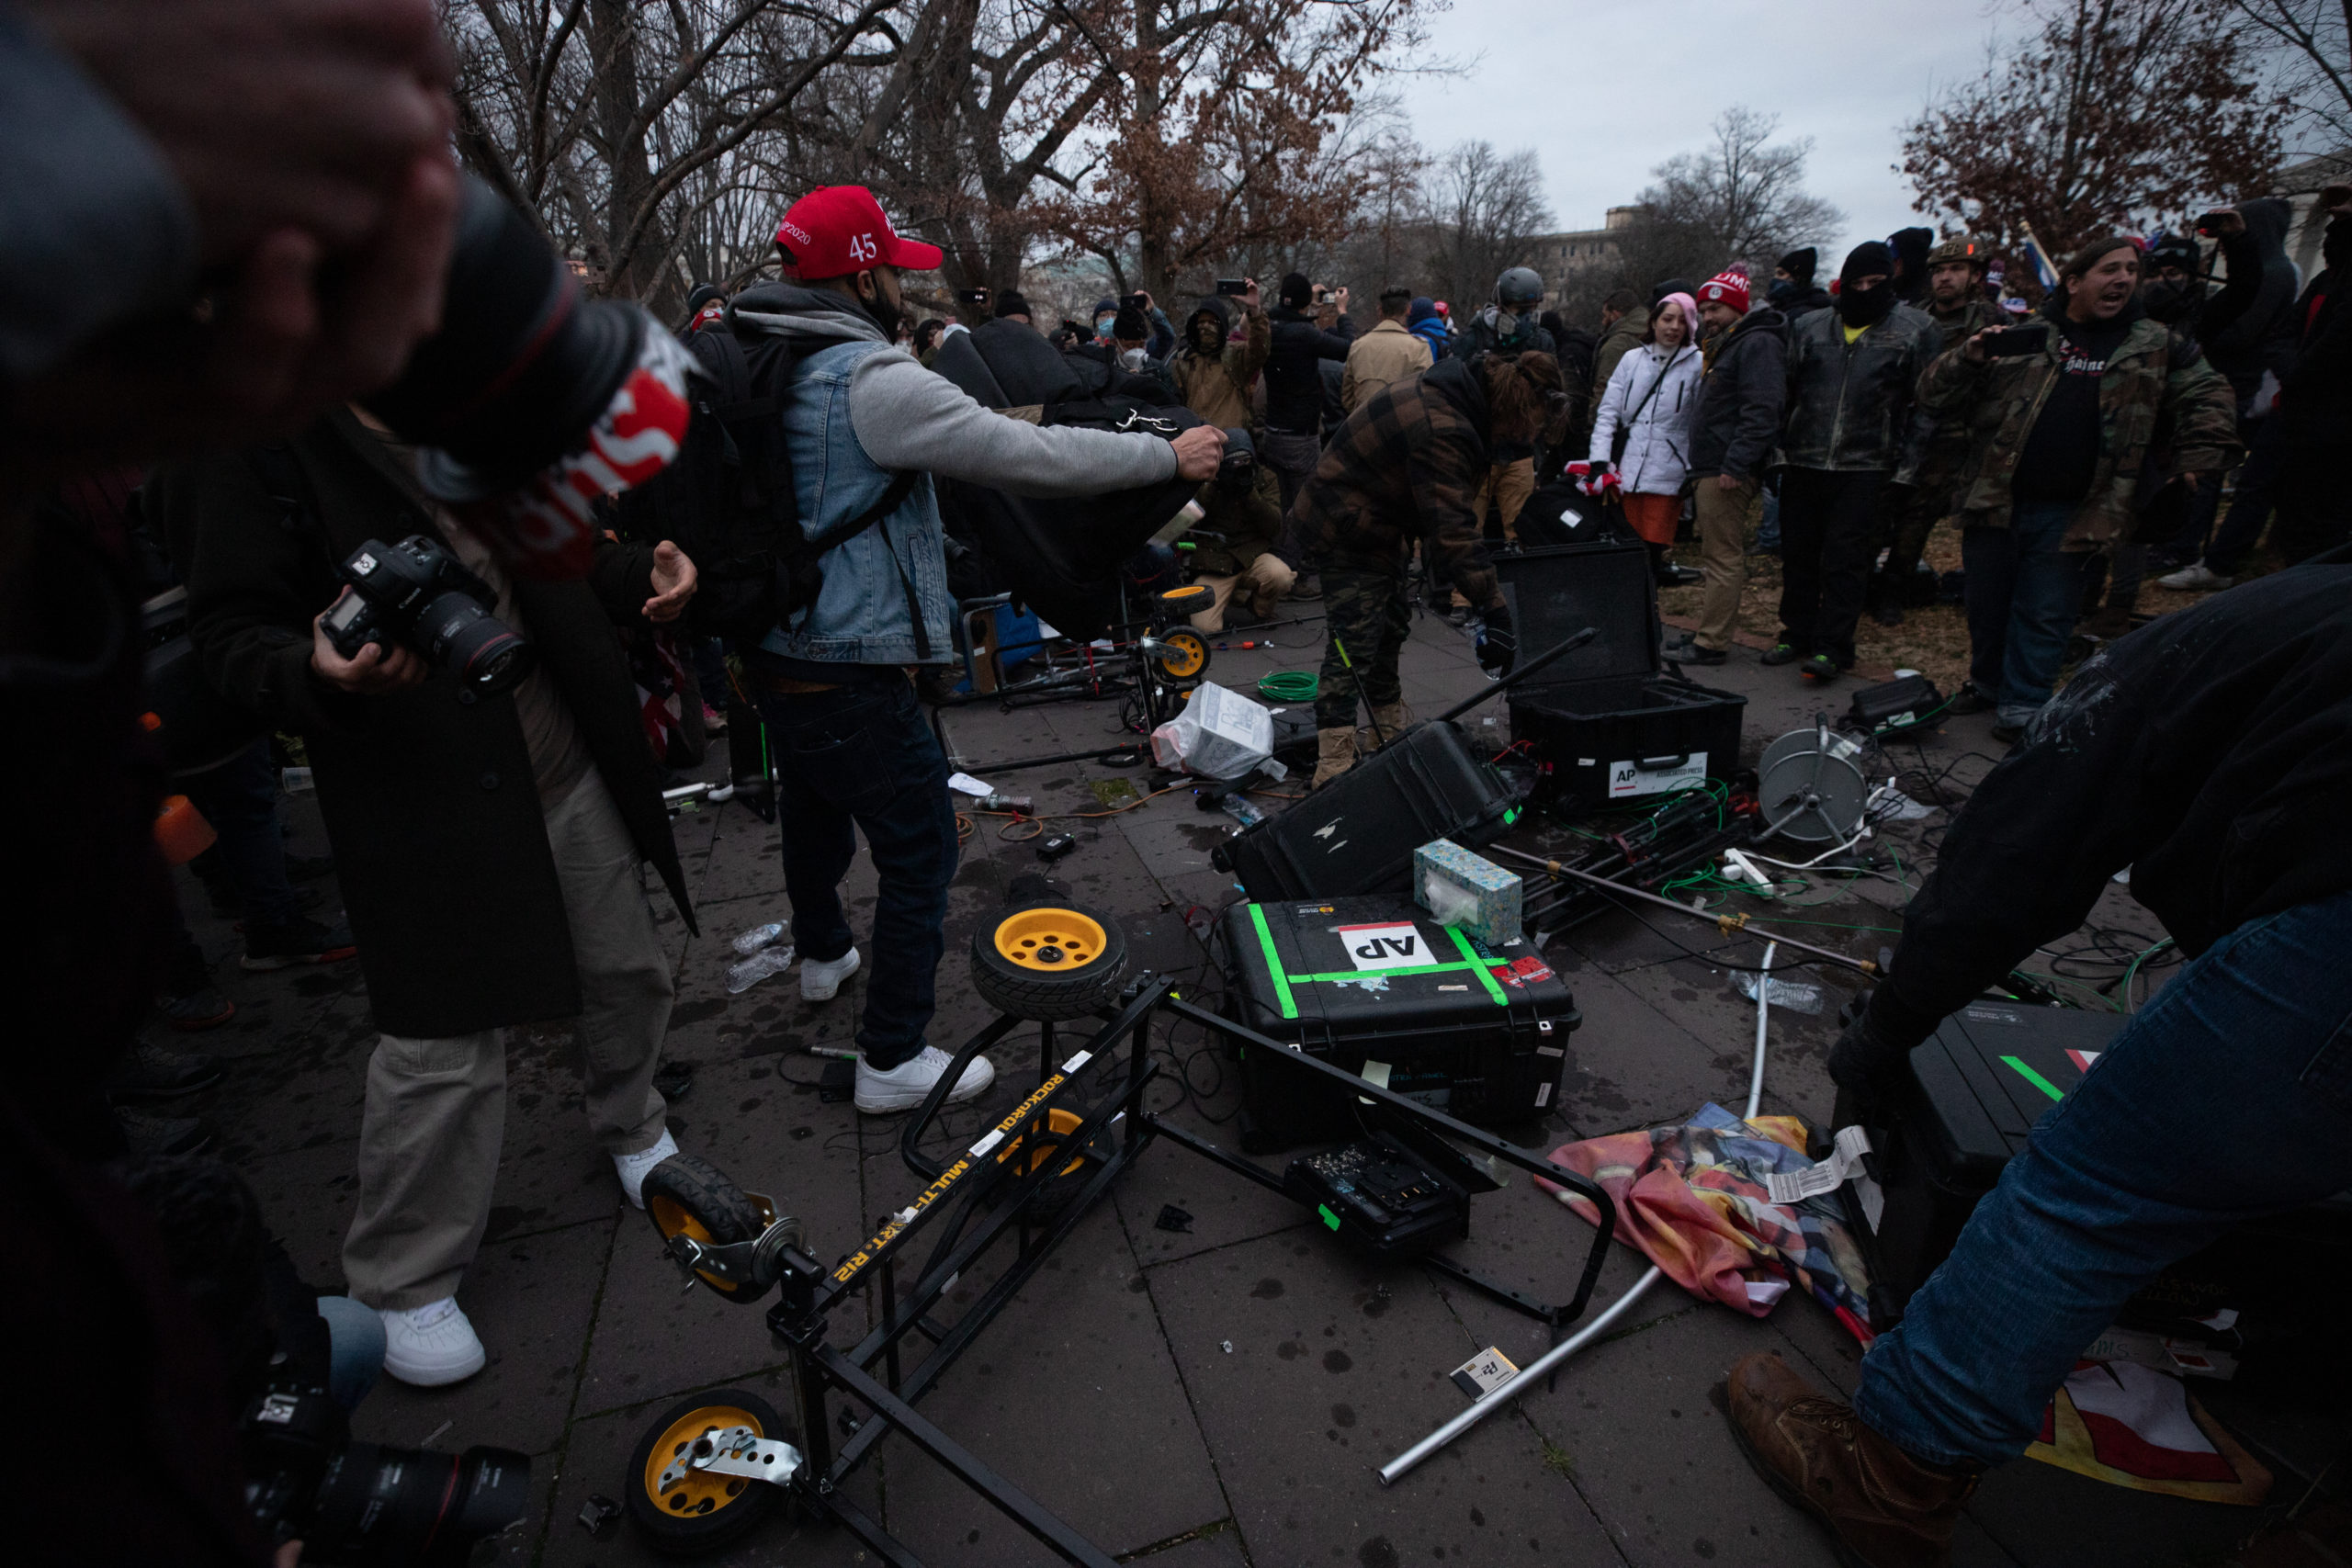 Protesters smashed media gear out on the Capitol Grounds in Washington, D.C. on Jan. 6, 2021. (Kaylee Greenlee - Daily Caller News Foundation)